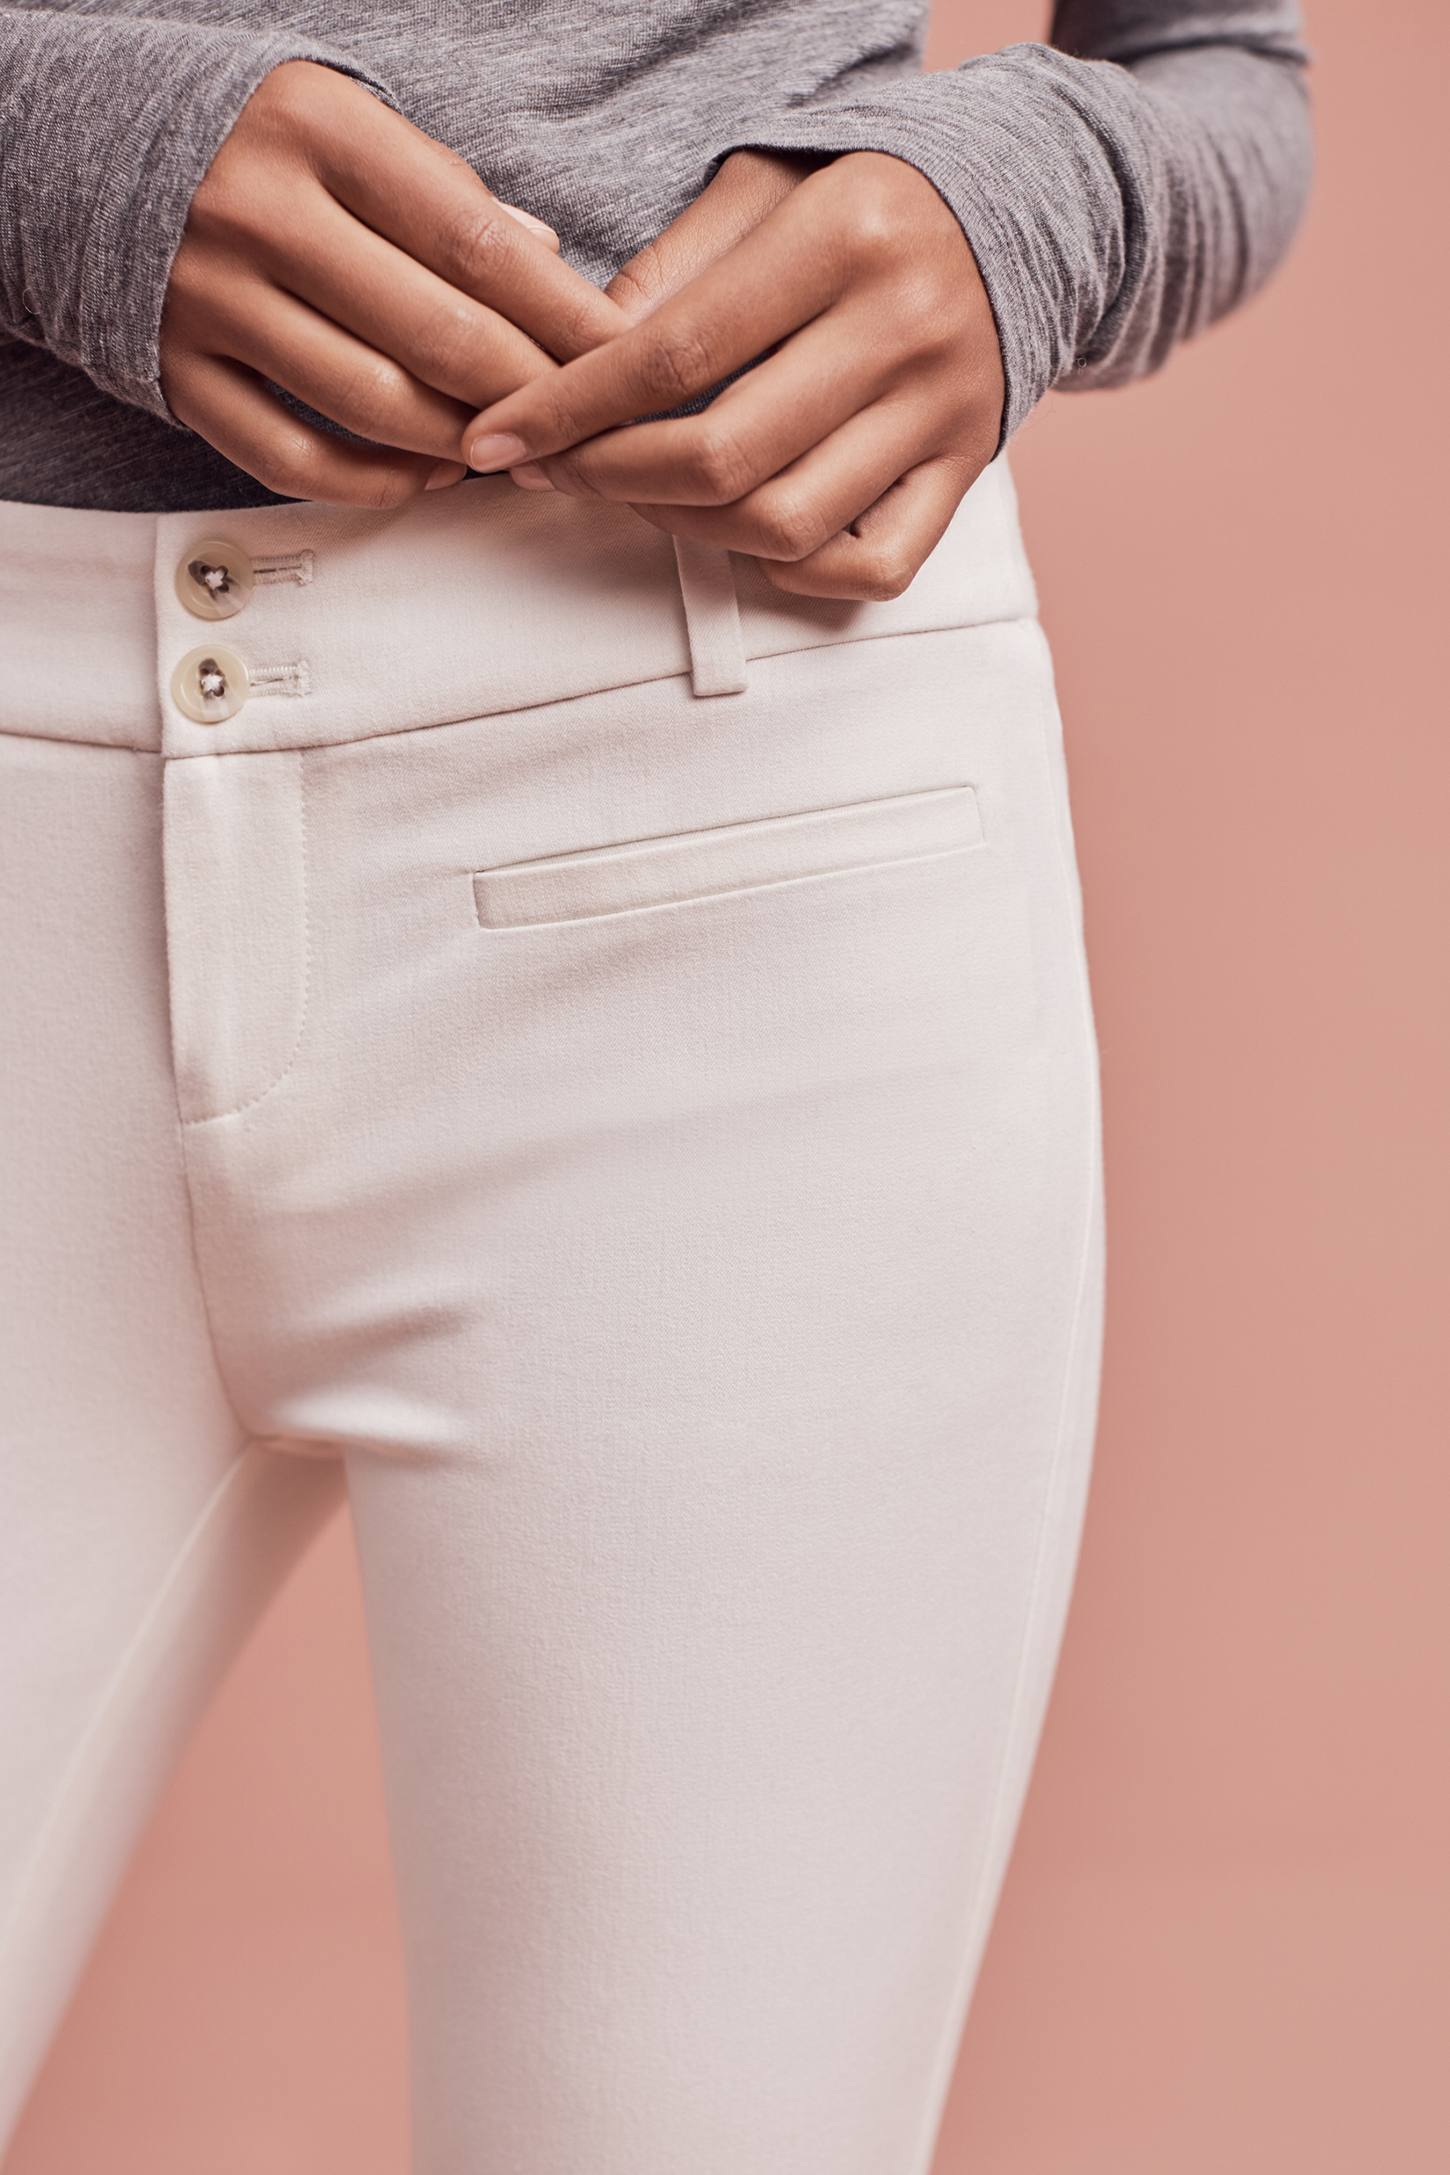 Slide View: 3: The Essential Slim Trouser